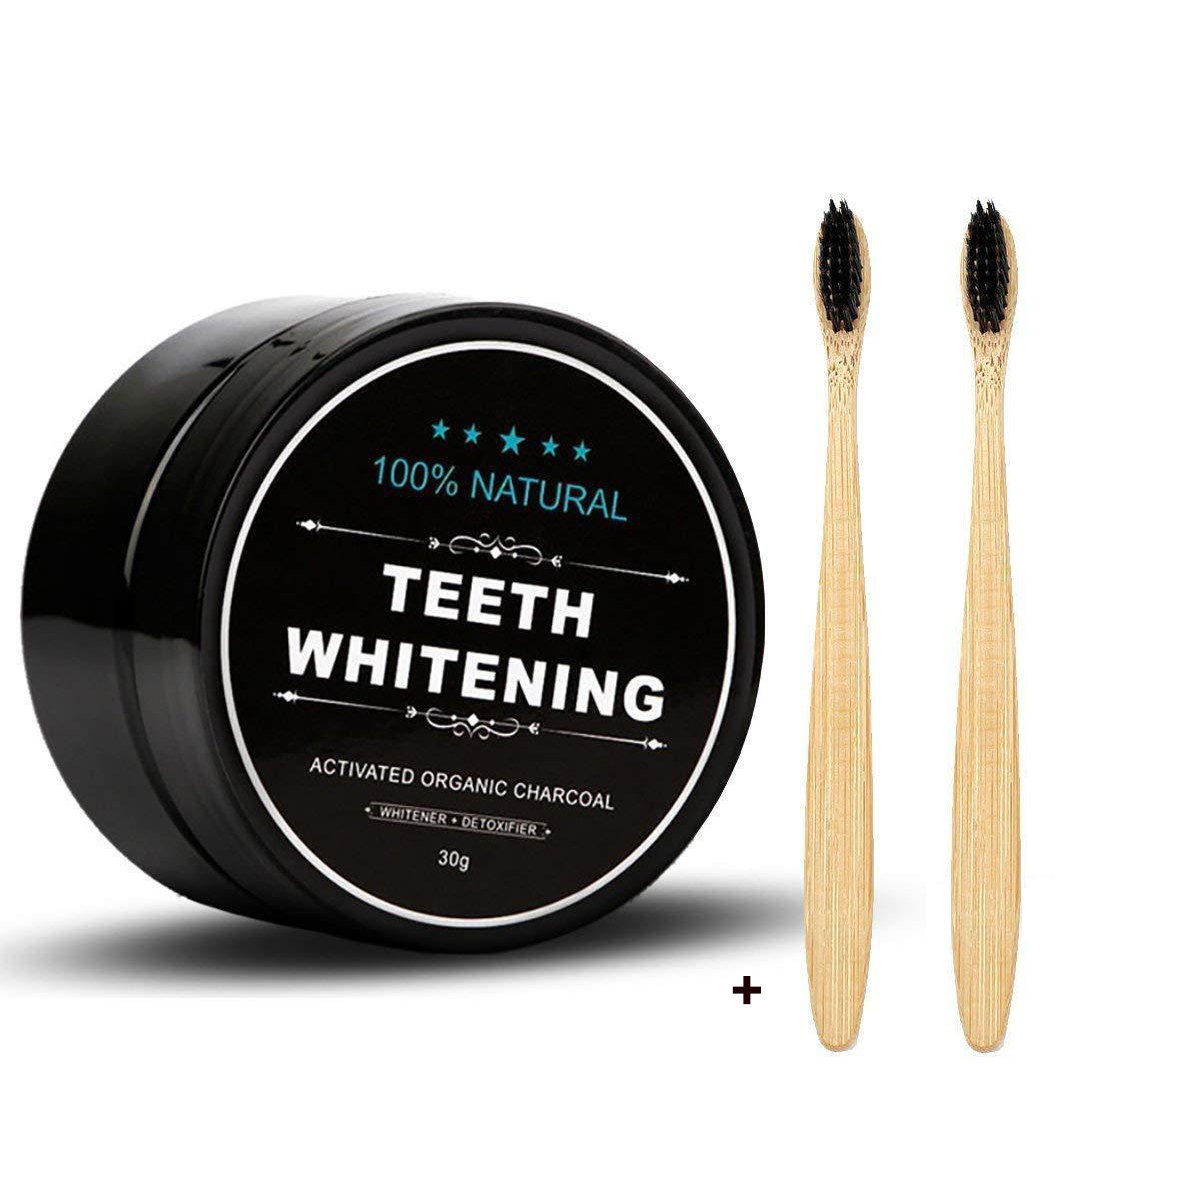 30g Teeth Whitening Oral Care Charcoal Powder Natural Activated Charcoal Teeth Whitener Powder Oral Hygiene